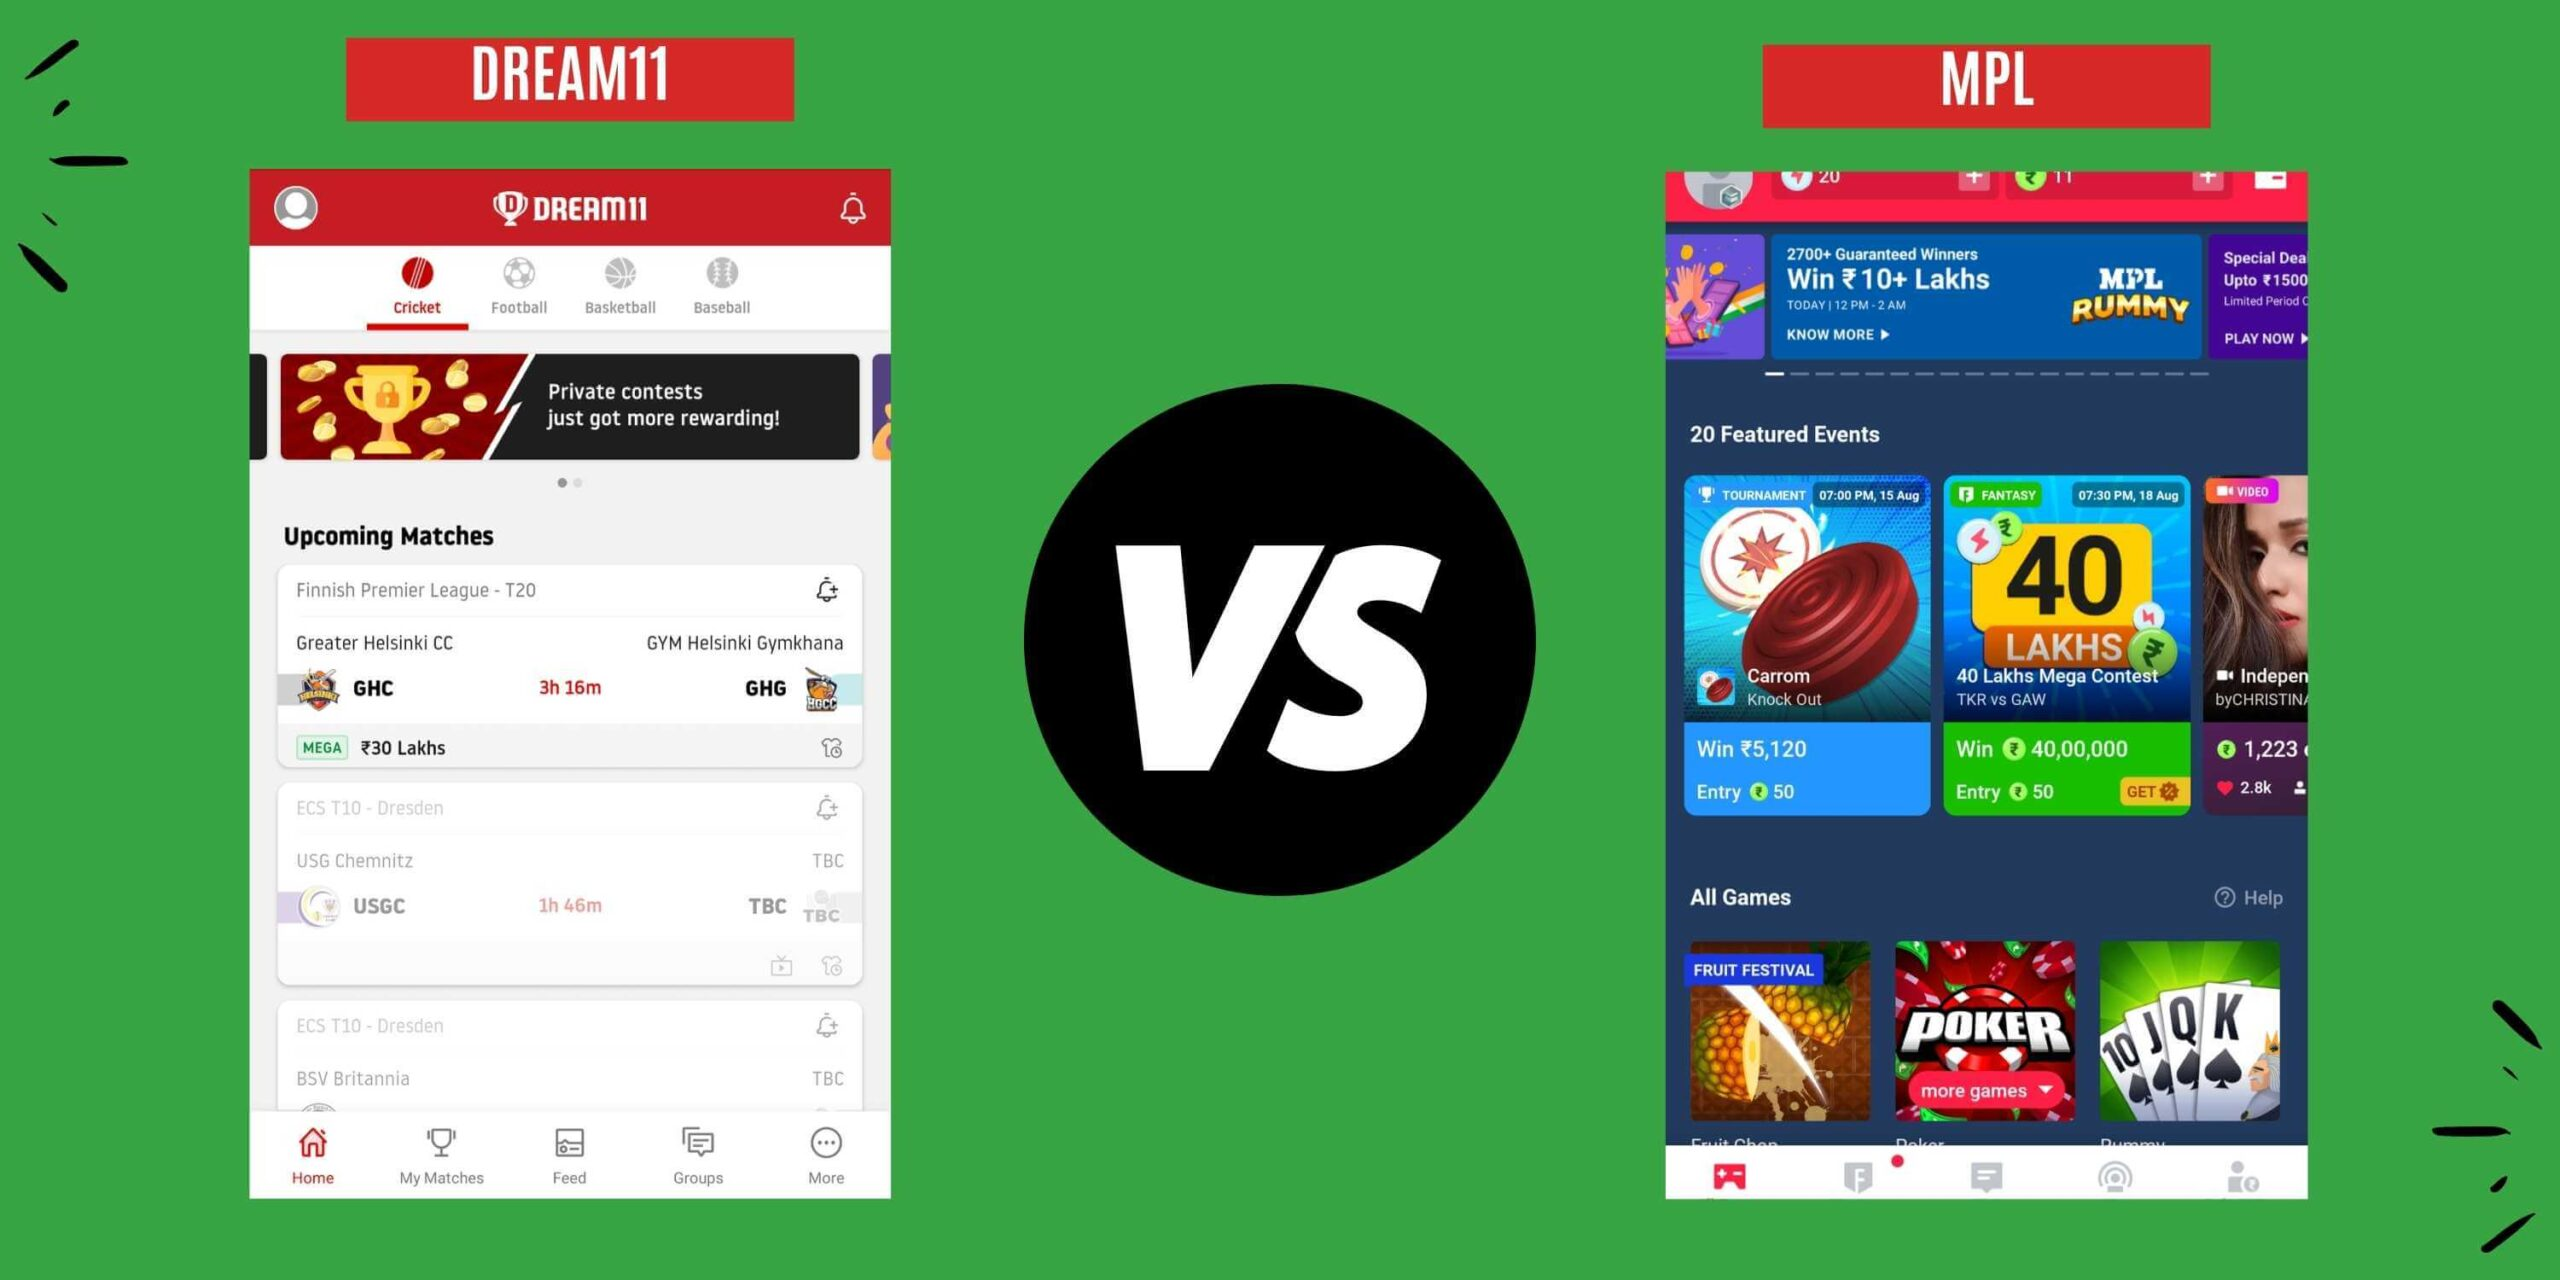 Dream11 vs MPL App Interface